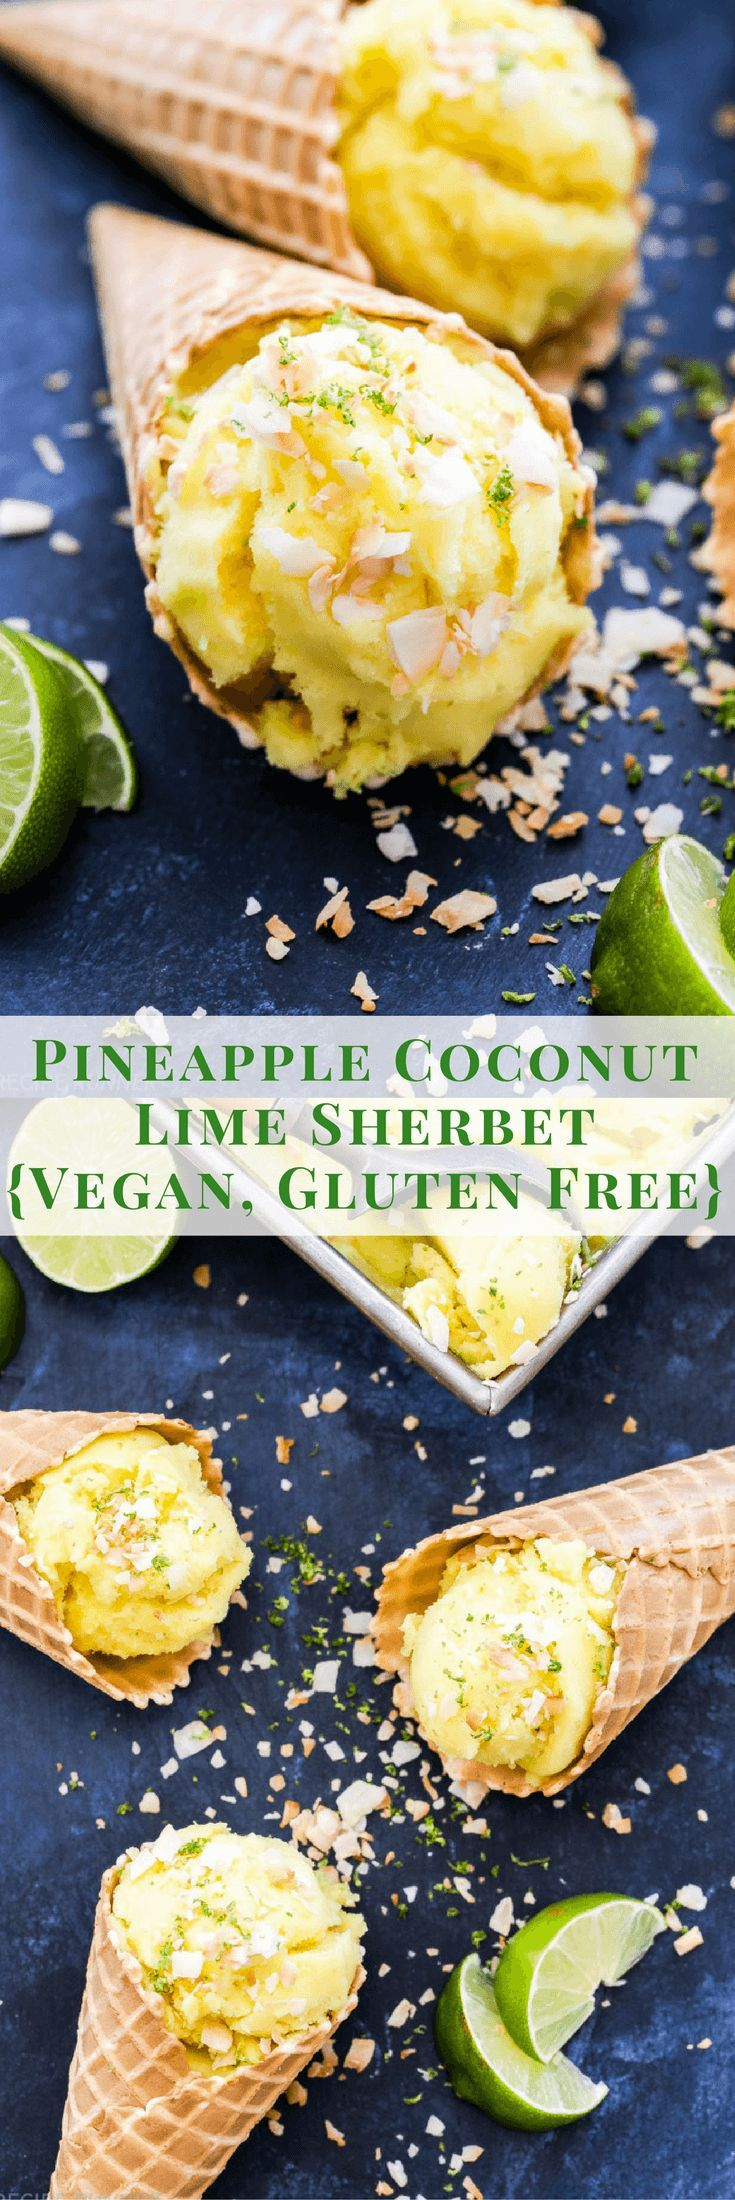 Pineapple Coconut Lime Sherbet is a refreshingly light and dairy free dessert to cool off with this summer! This tropical treat will have everyone asking for seconds!